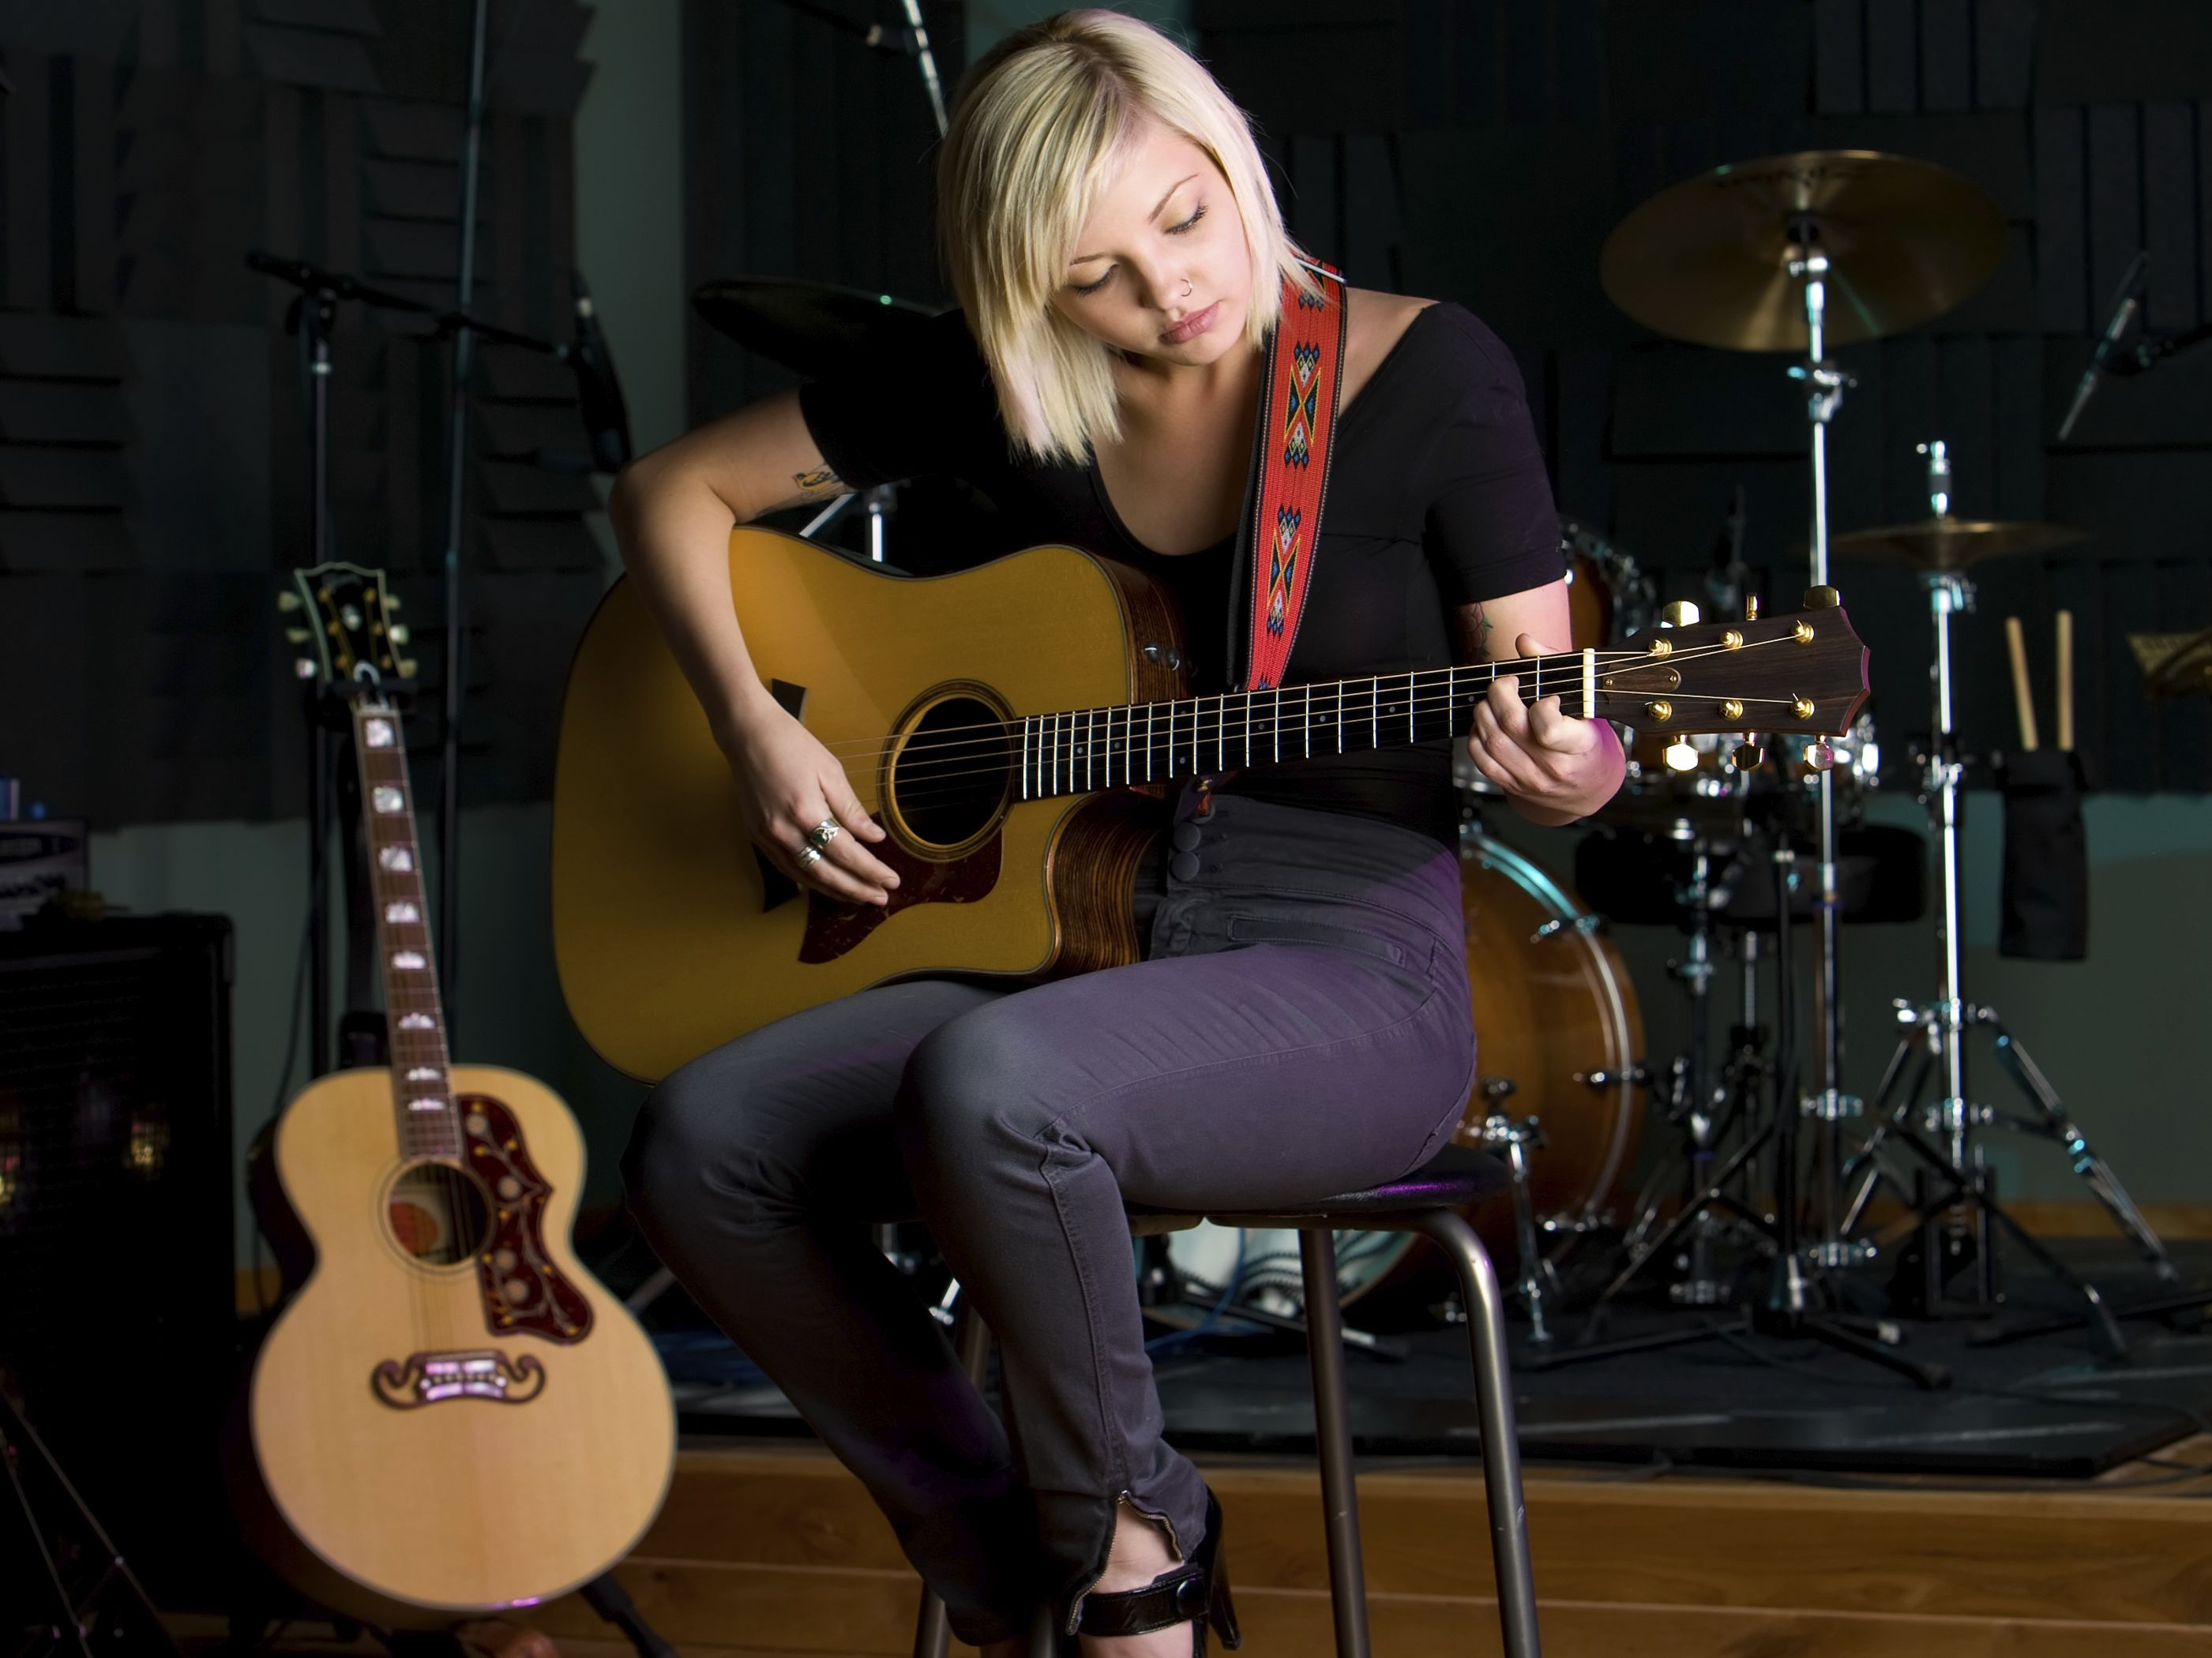 Woman sitting on a stool playing guitar